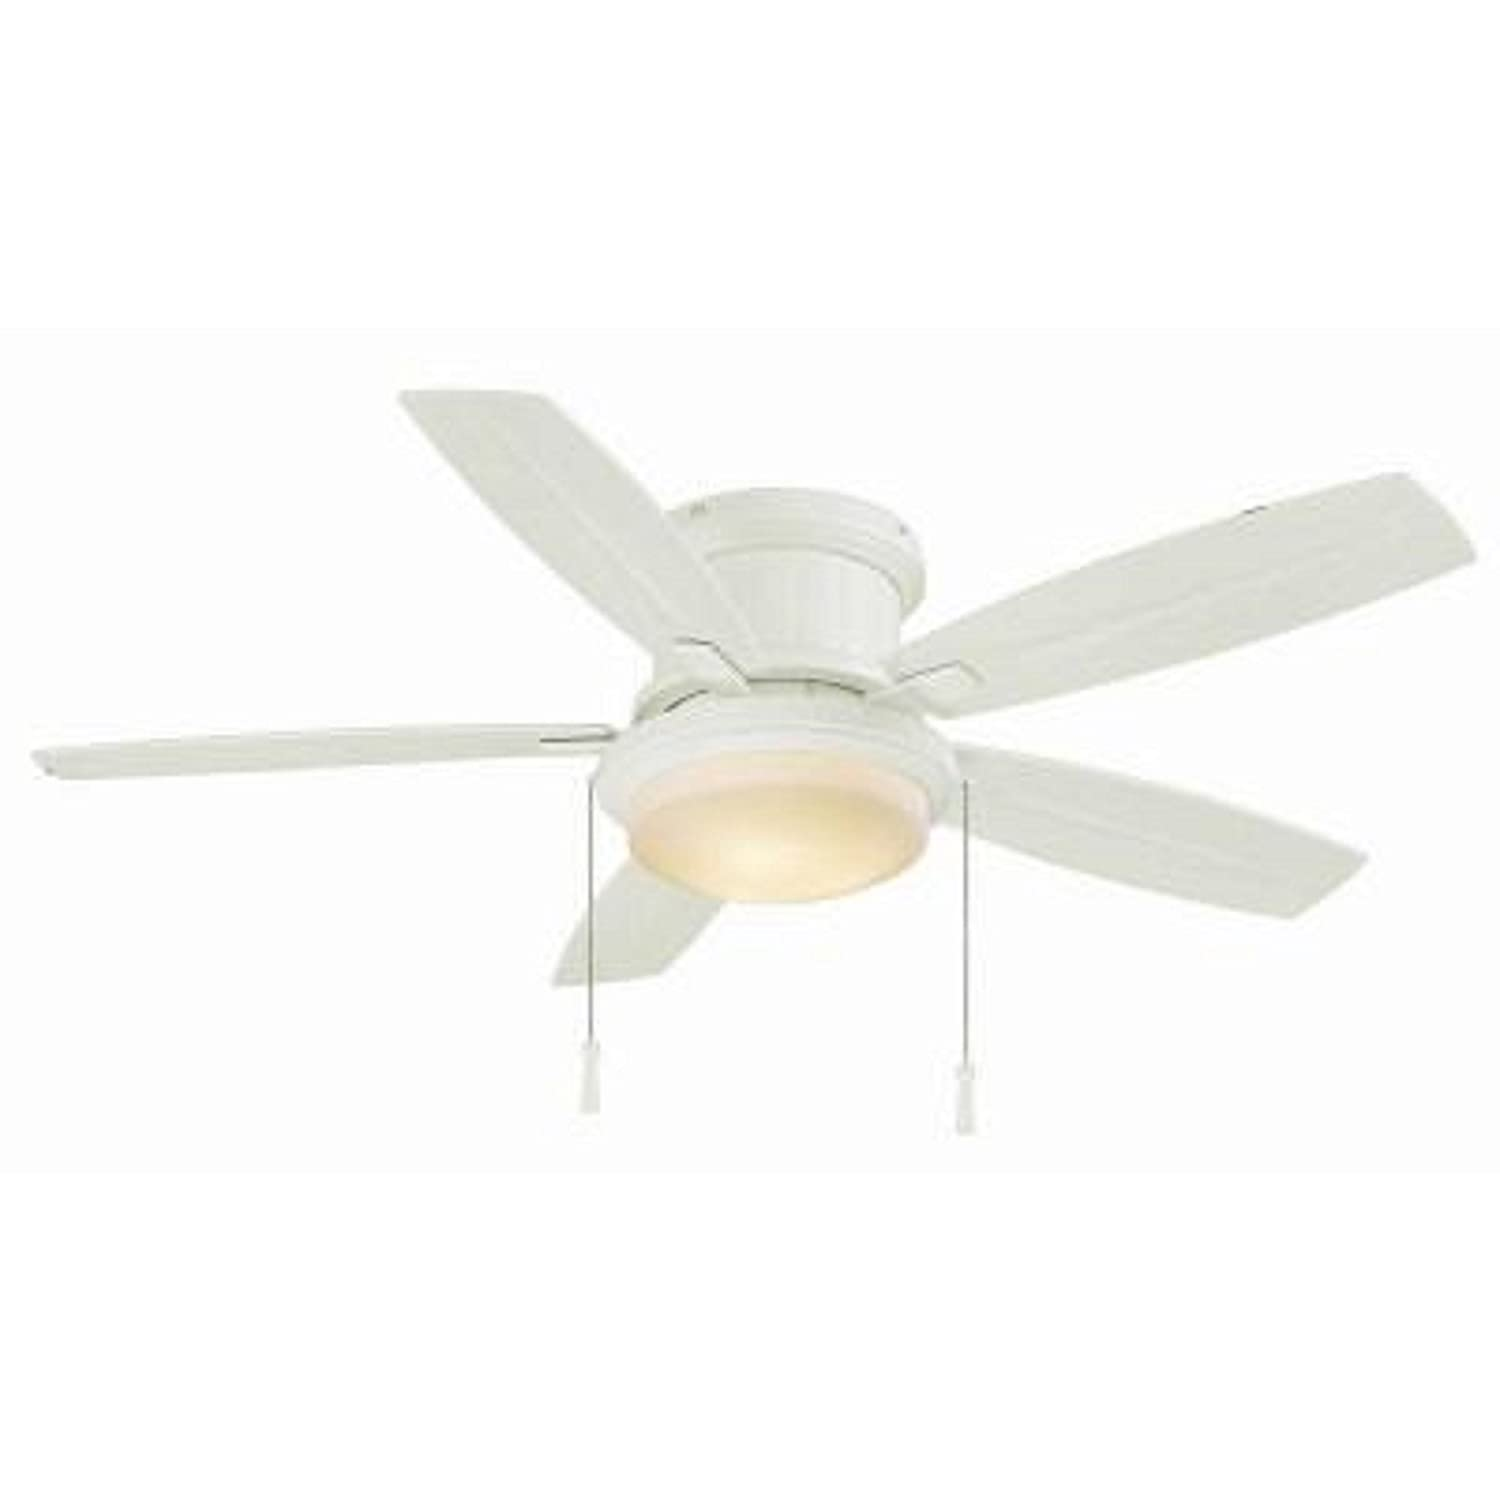 profile mylifeinc ceiling me inch ceilings fans low hunter light with fan lights white